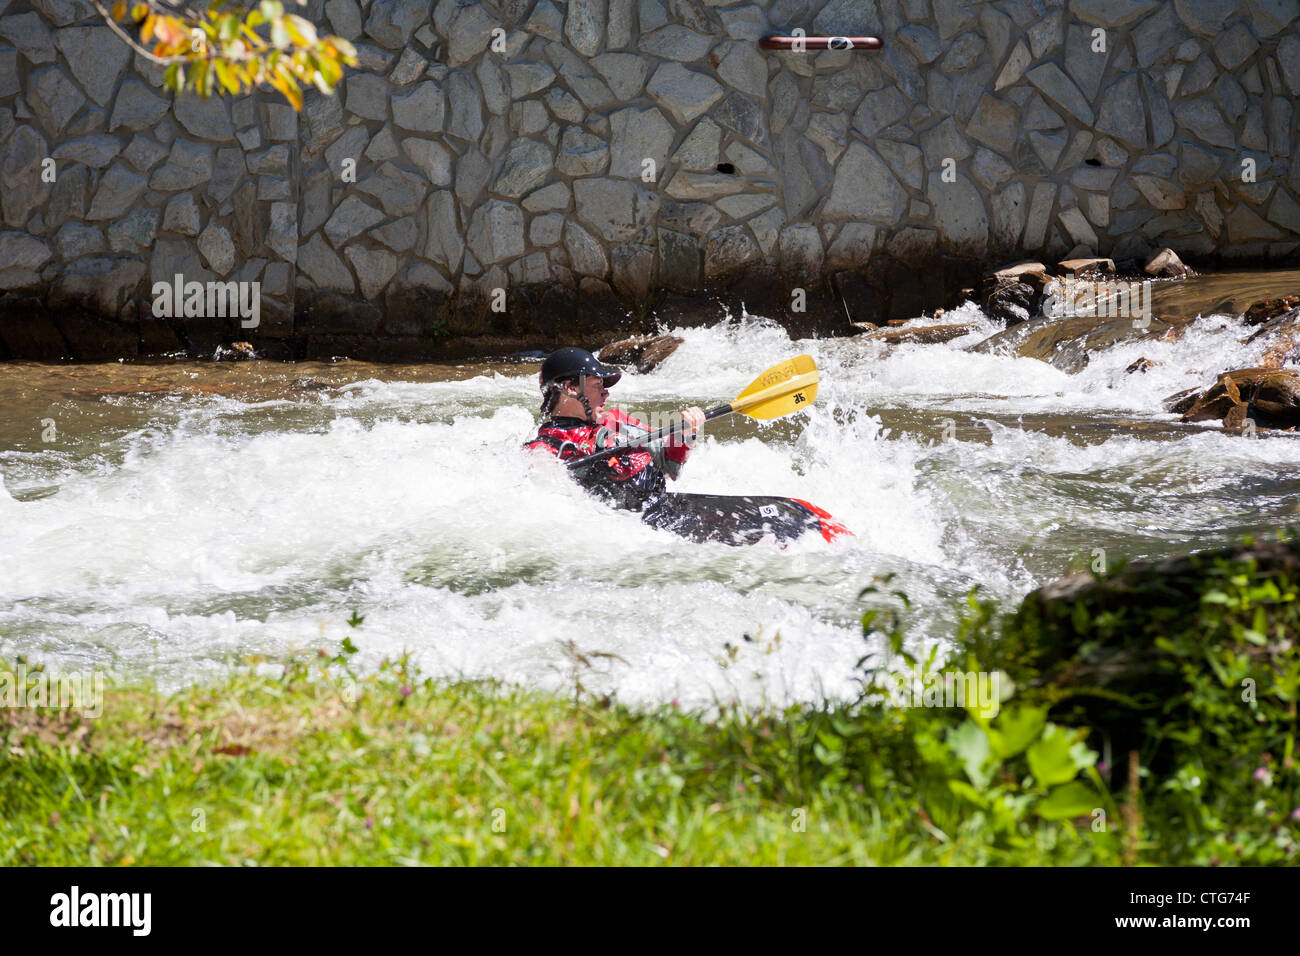 Whitewater kayaker manouvering kayak in rapids at the Nantahala Outdoor Center in North Carolina - Stock Image